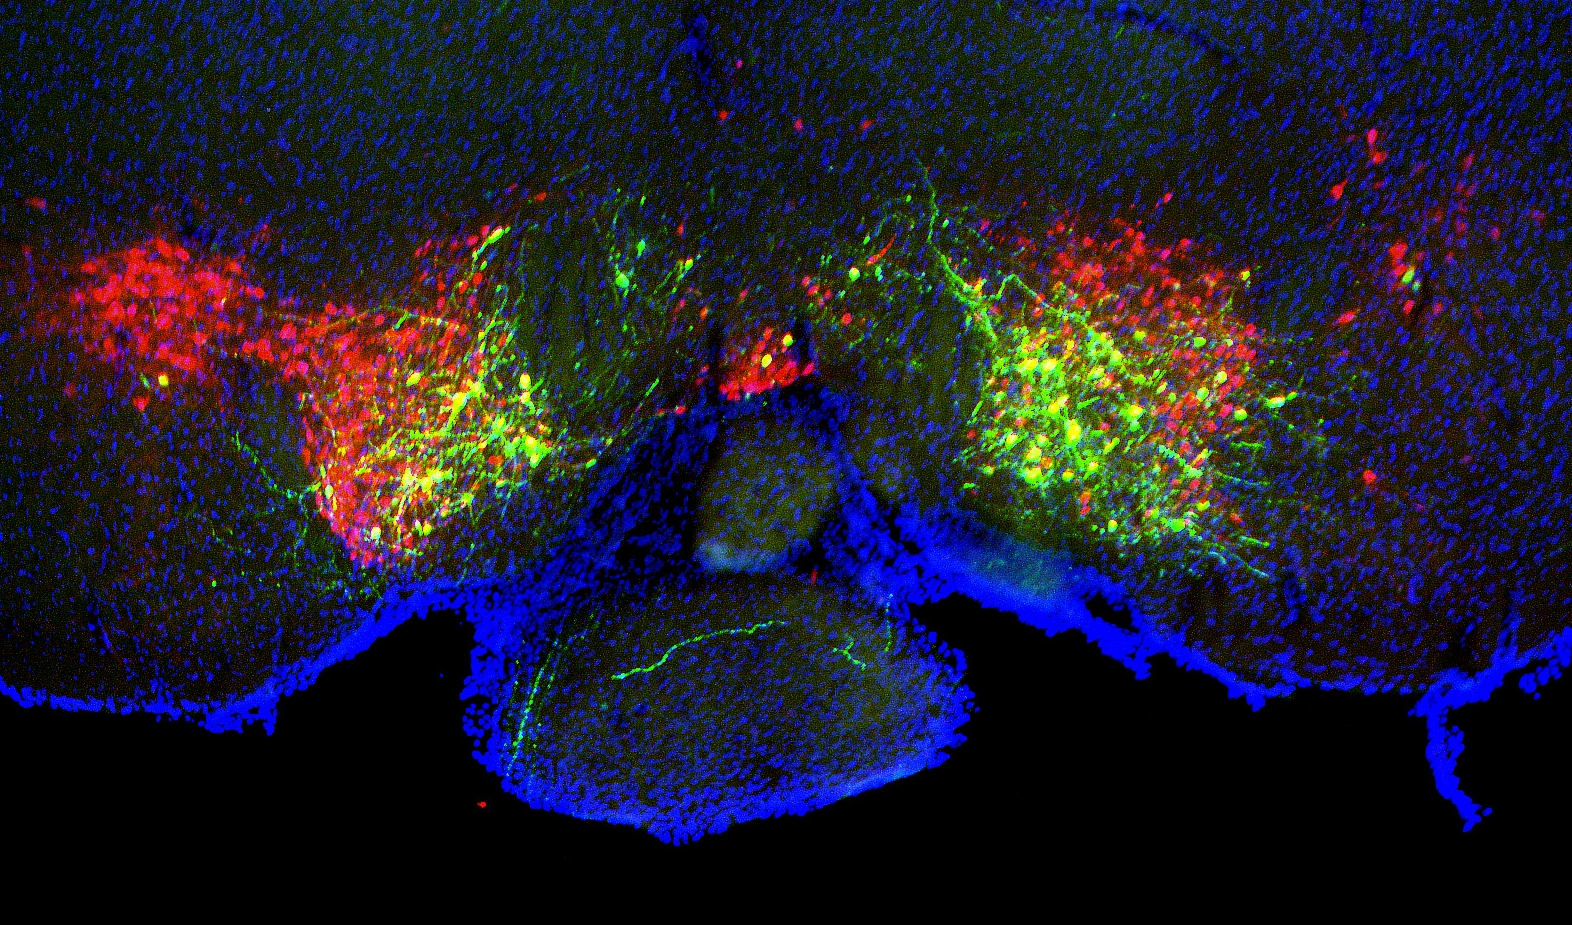 NAc-projecting VTA neurons (green), VTA dopamine neurons (red), and nuclei (blue)